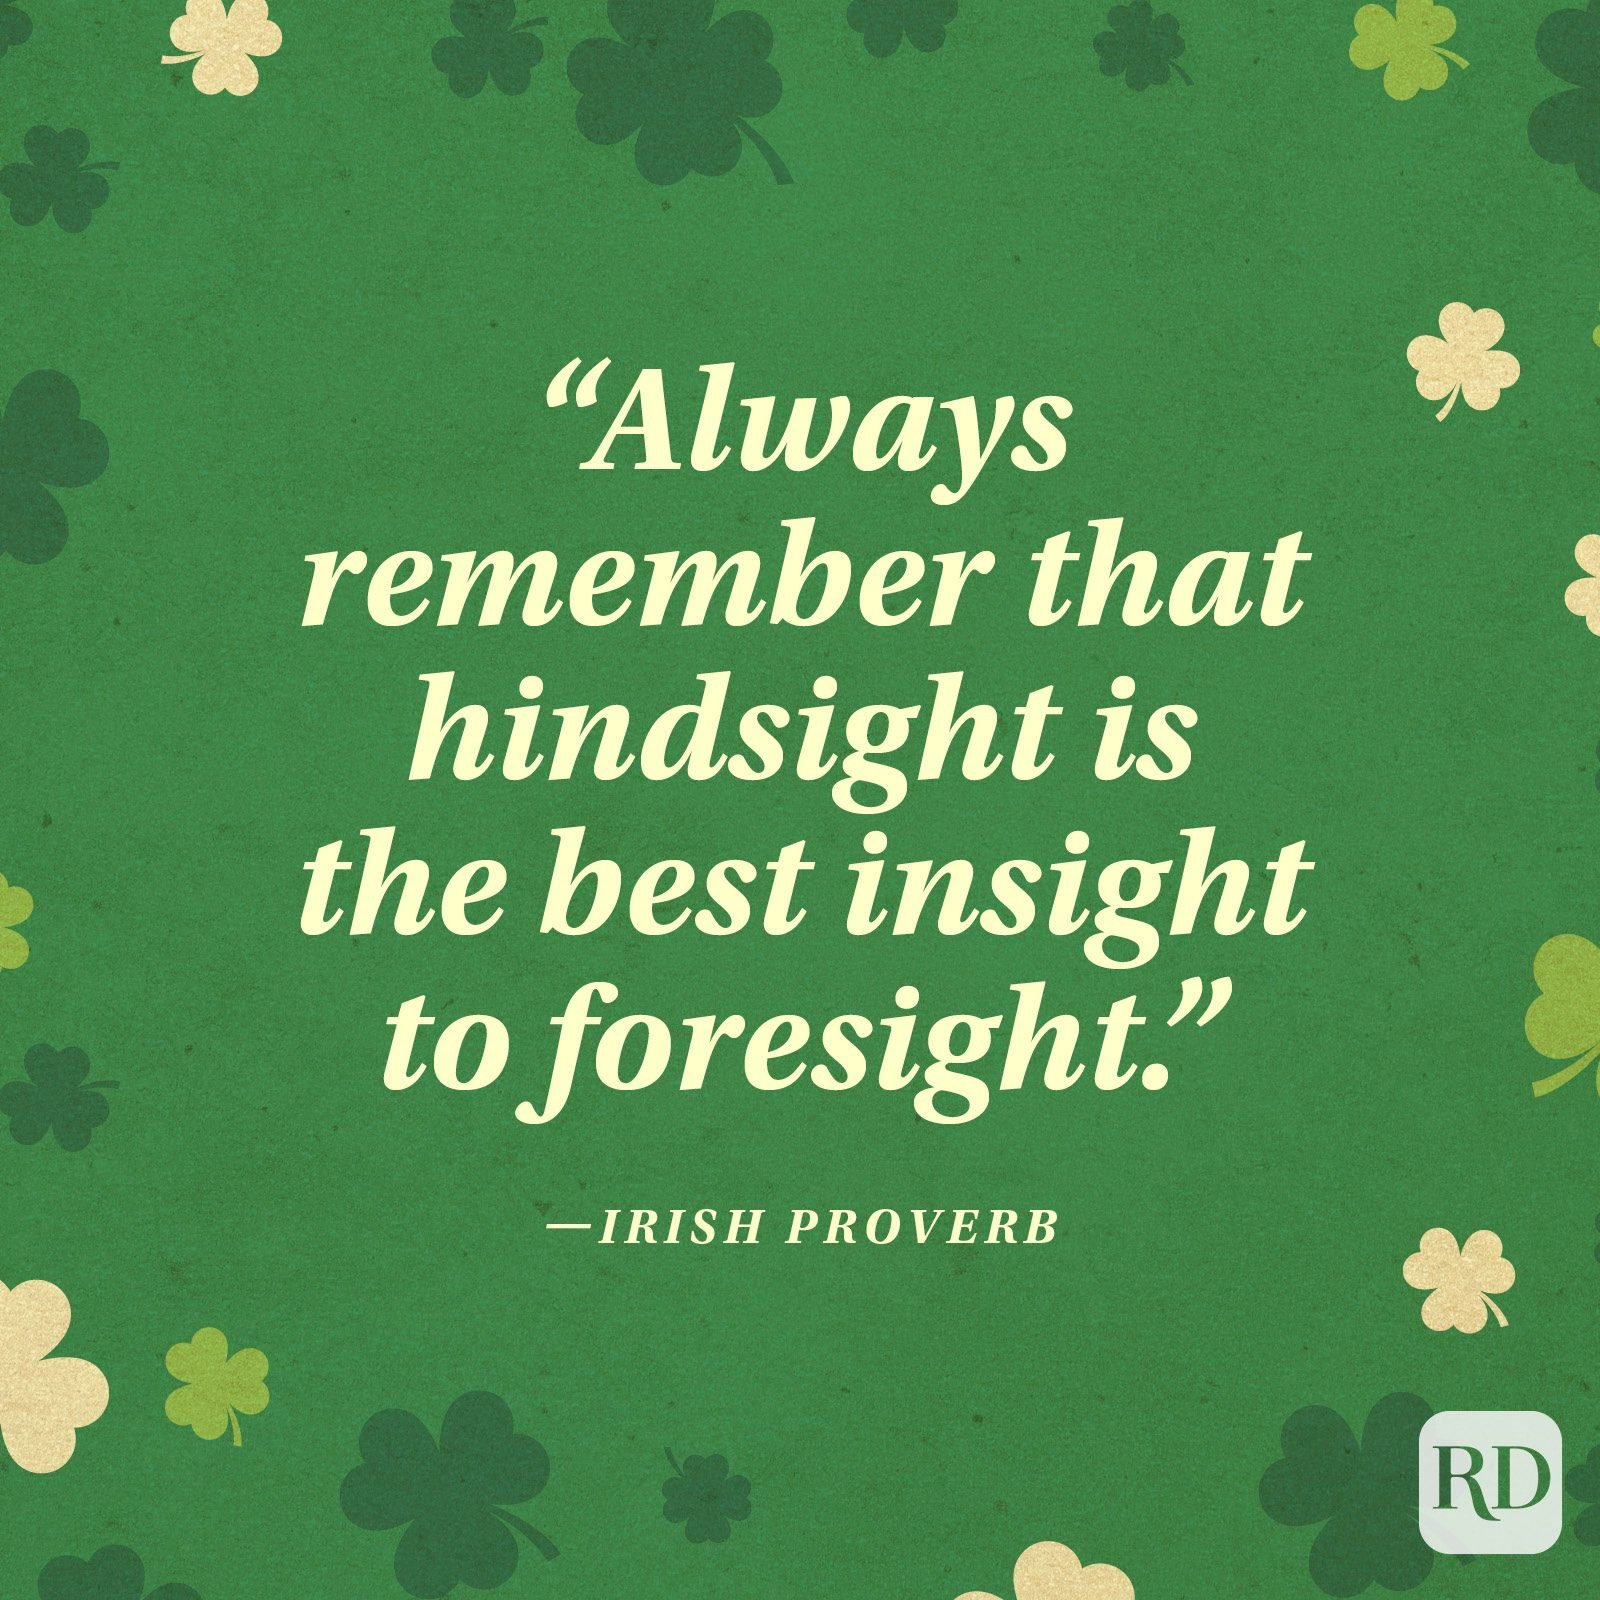 """Always remember that hindsight is the best insight to foresight."" —Irish proverb"